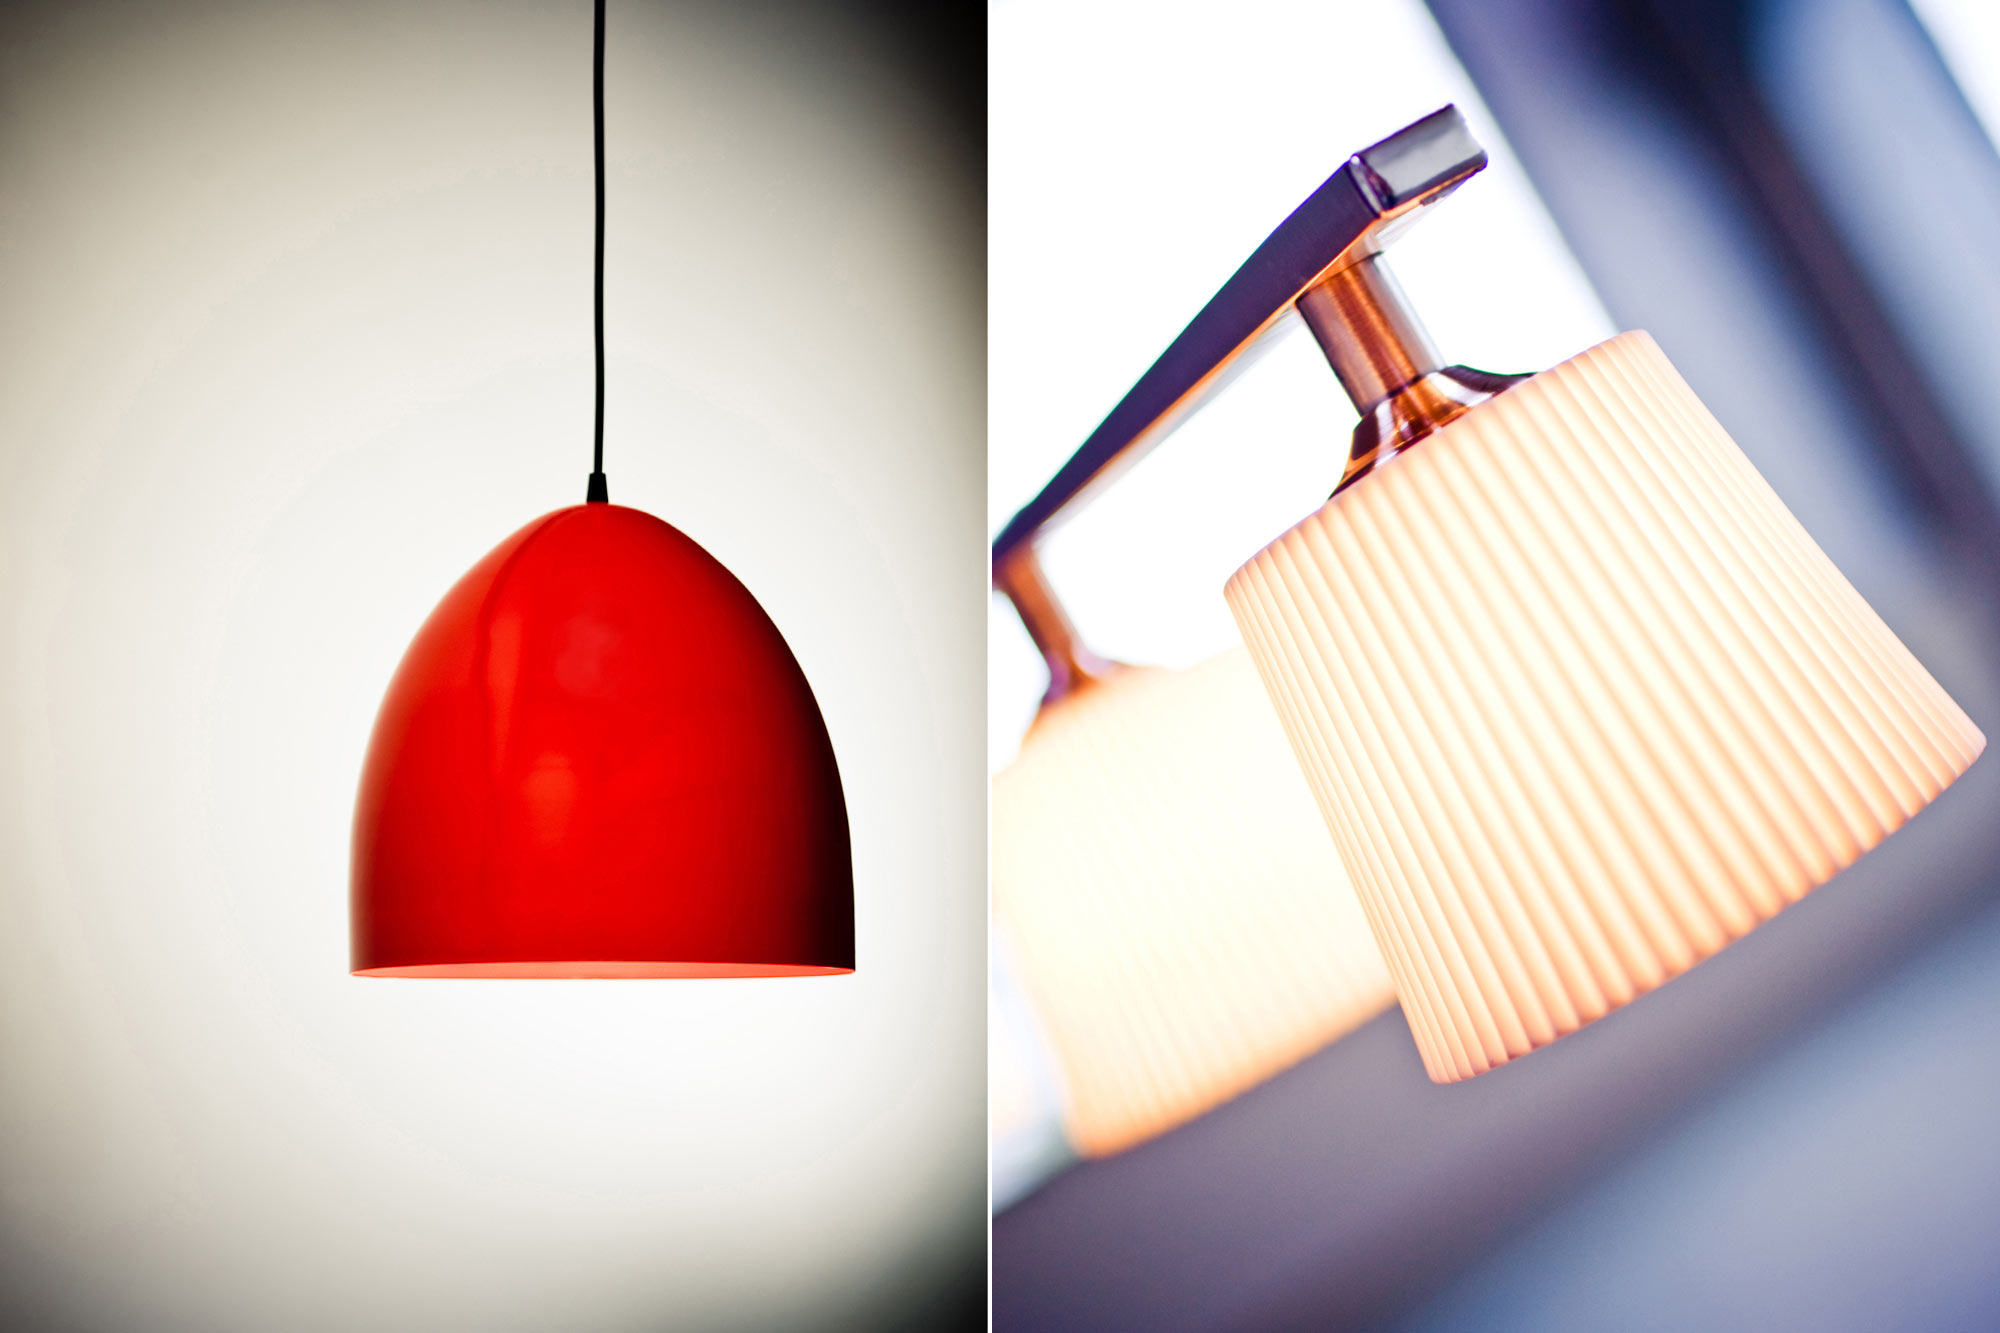 PRODUCT IMAGERY / Designer Lights